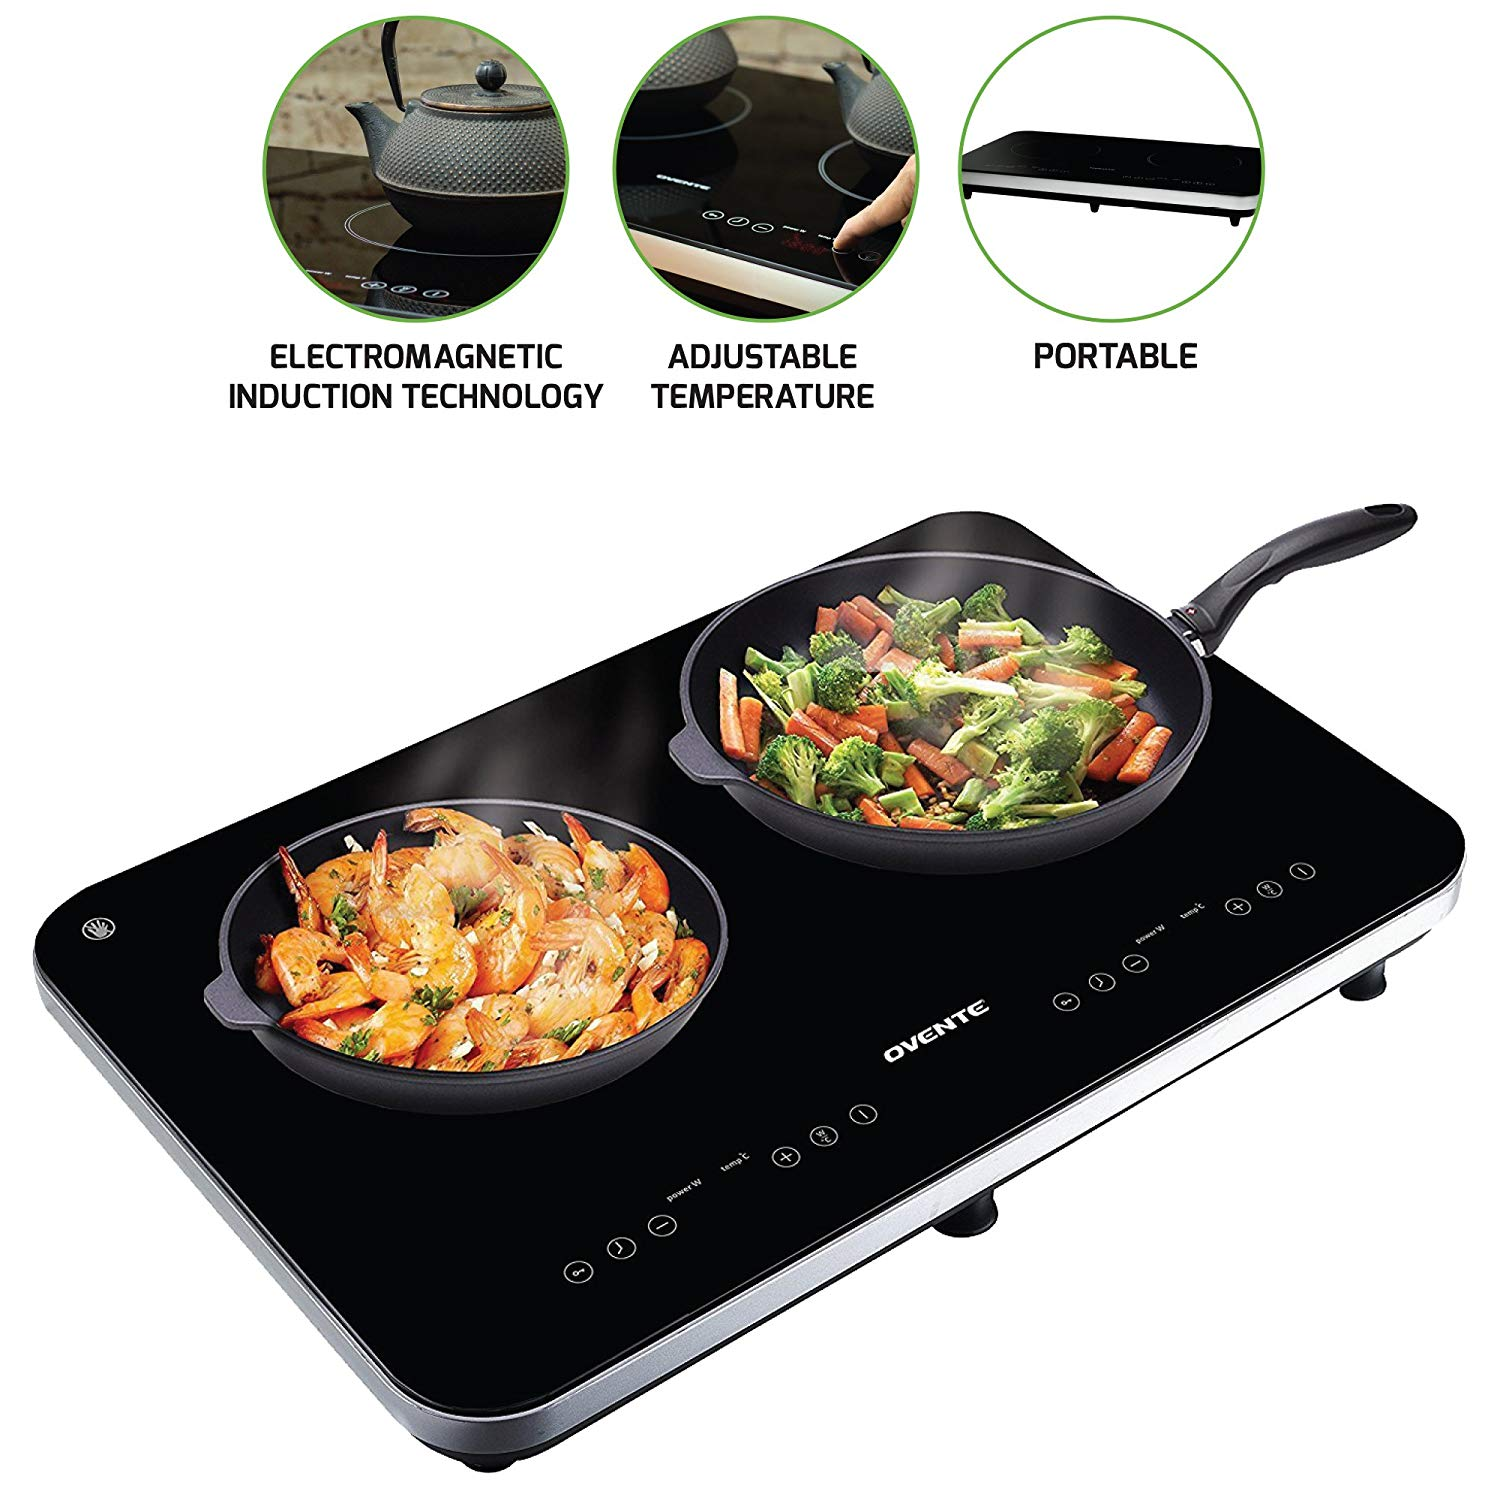 Ovente Induction stove tops